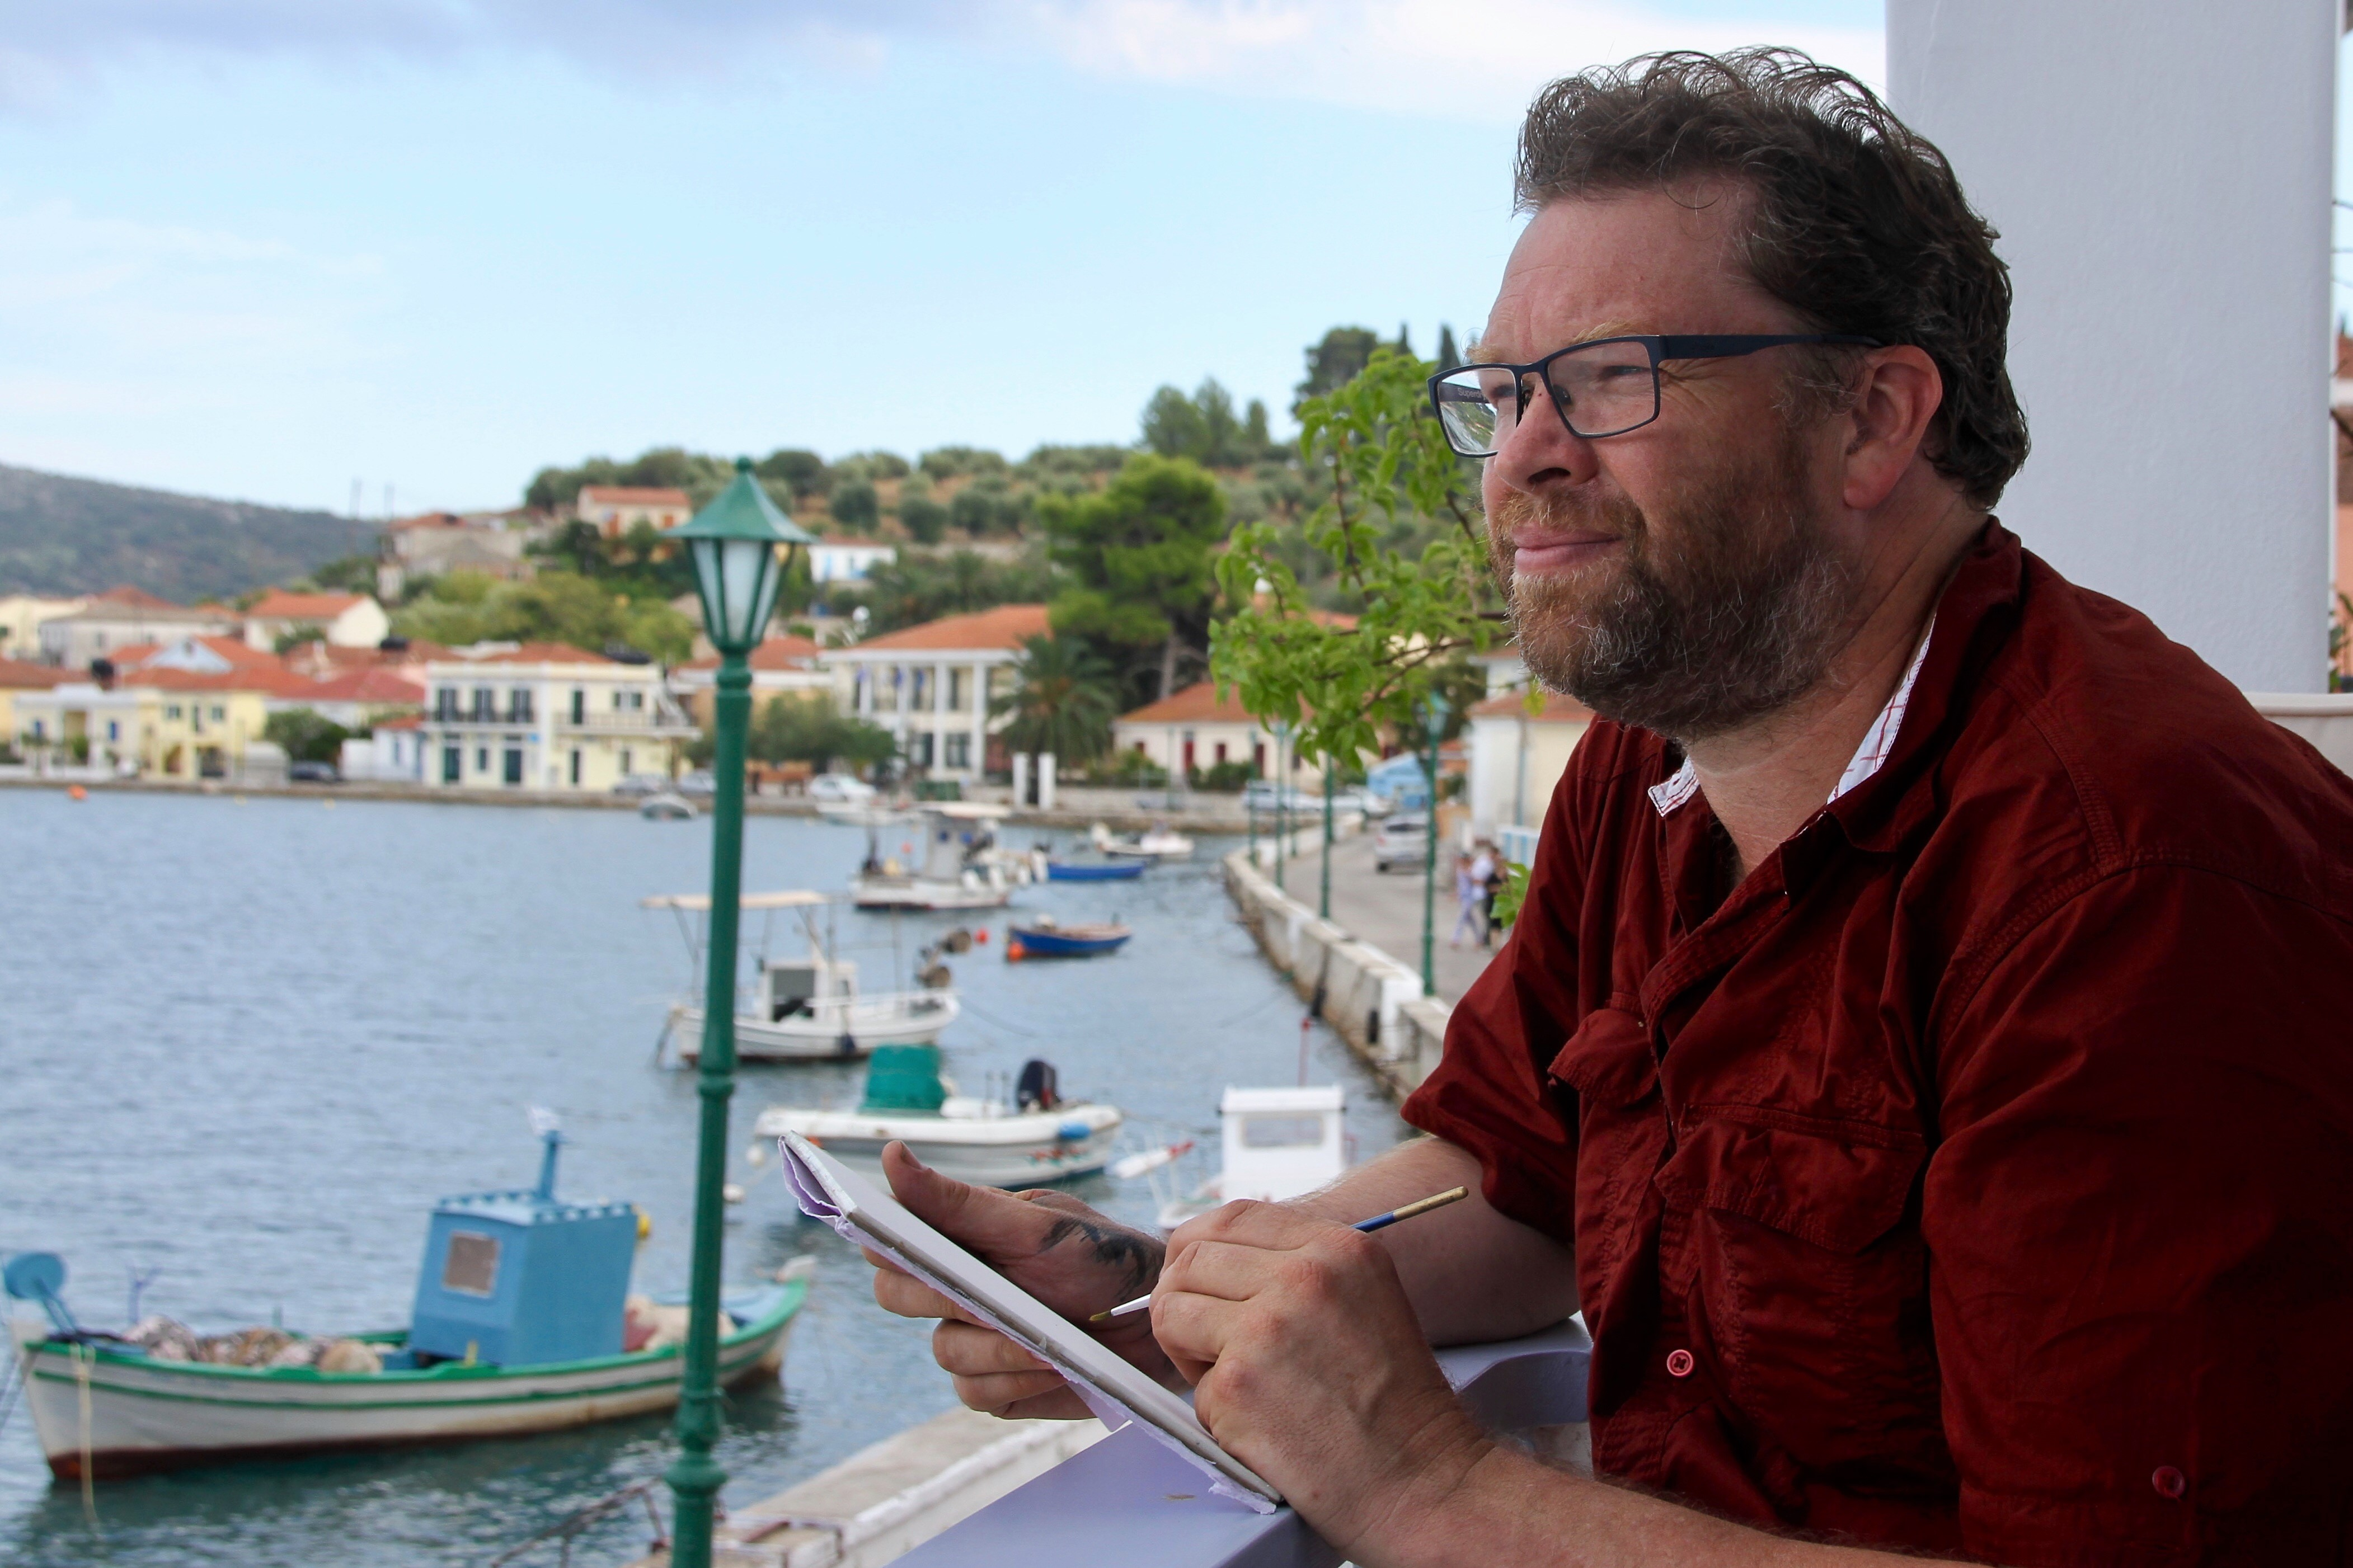 Victorian artist, Jason Roberts, conducts art workshops in Lefki